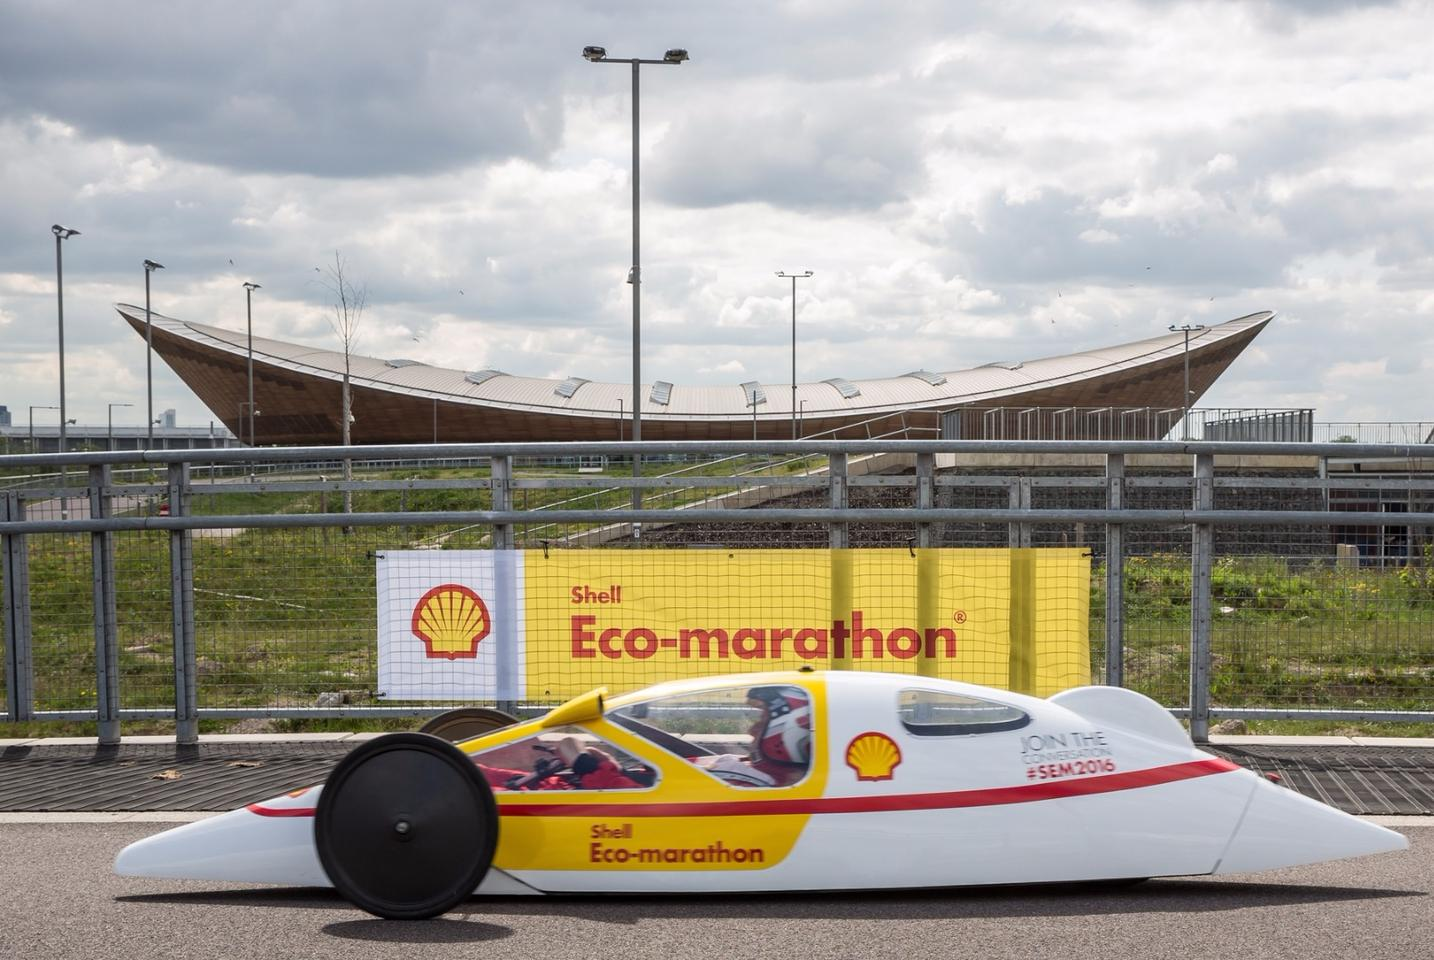 Gizmag achieved a fuel efficiency of 403.5 mpg (0.7 l/100 km)